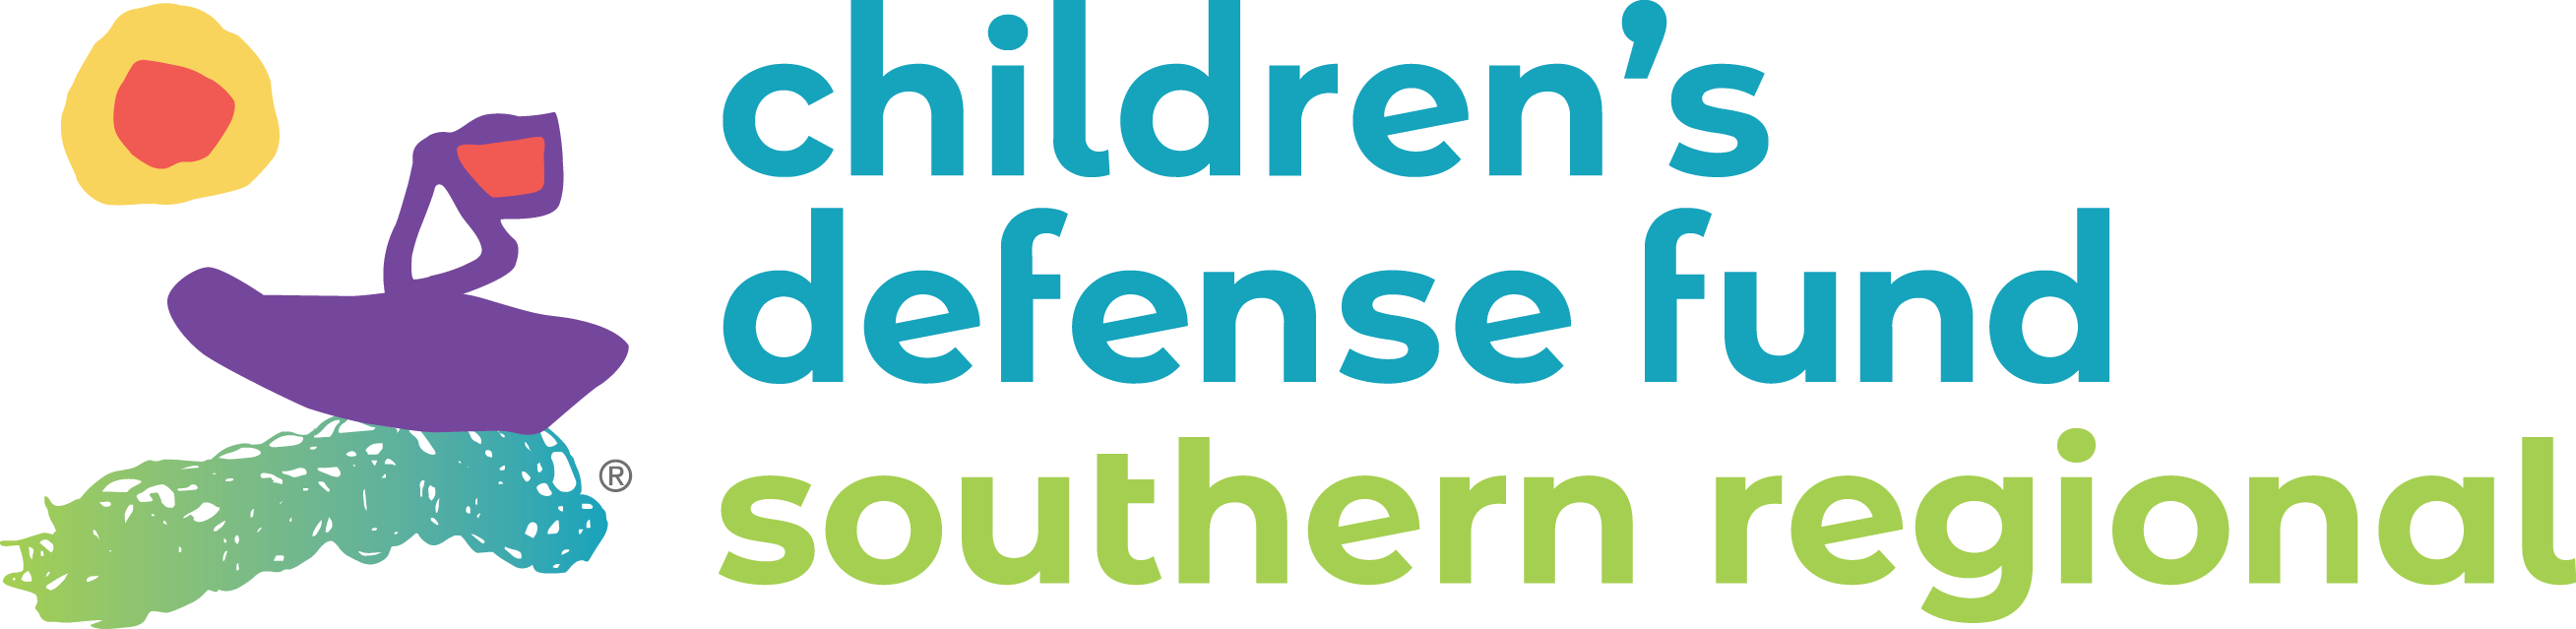 Children's Defense Fund - Southern Regional Office